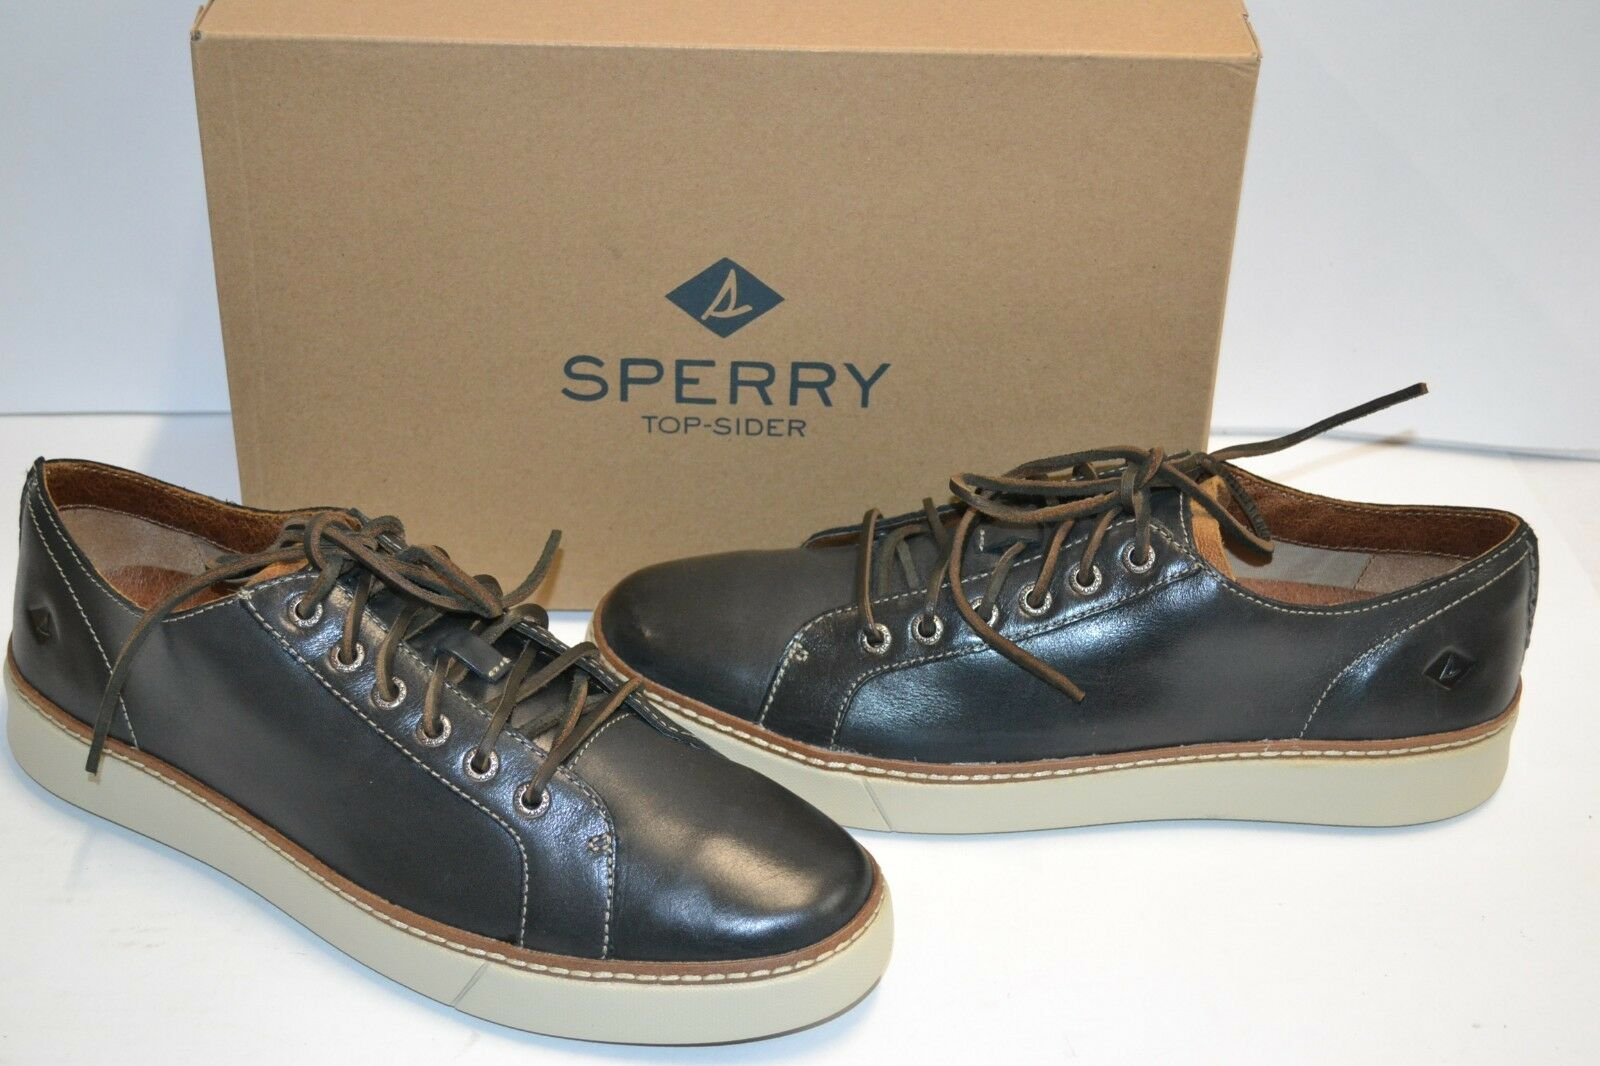 Scarpe casual da uomo  Sperry Top-Sider uomos Clipper LTT Oxford Charcoal LEATHER SNEAKER SHOE 10.5 M